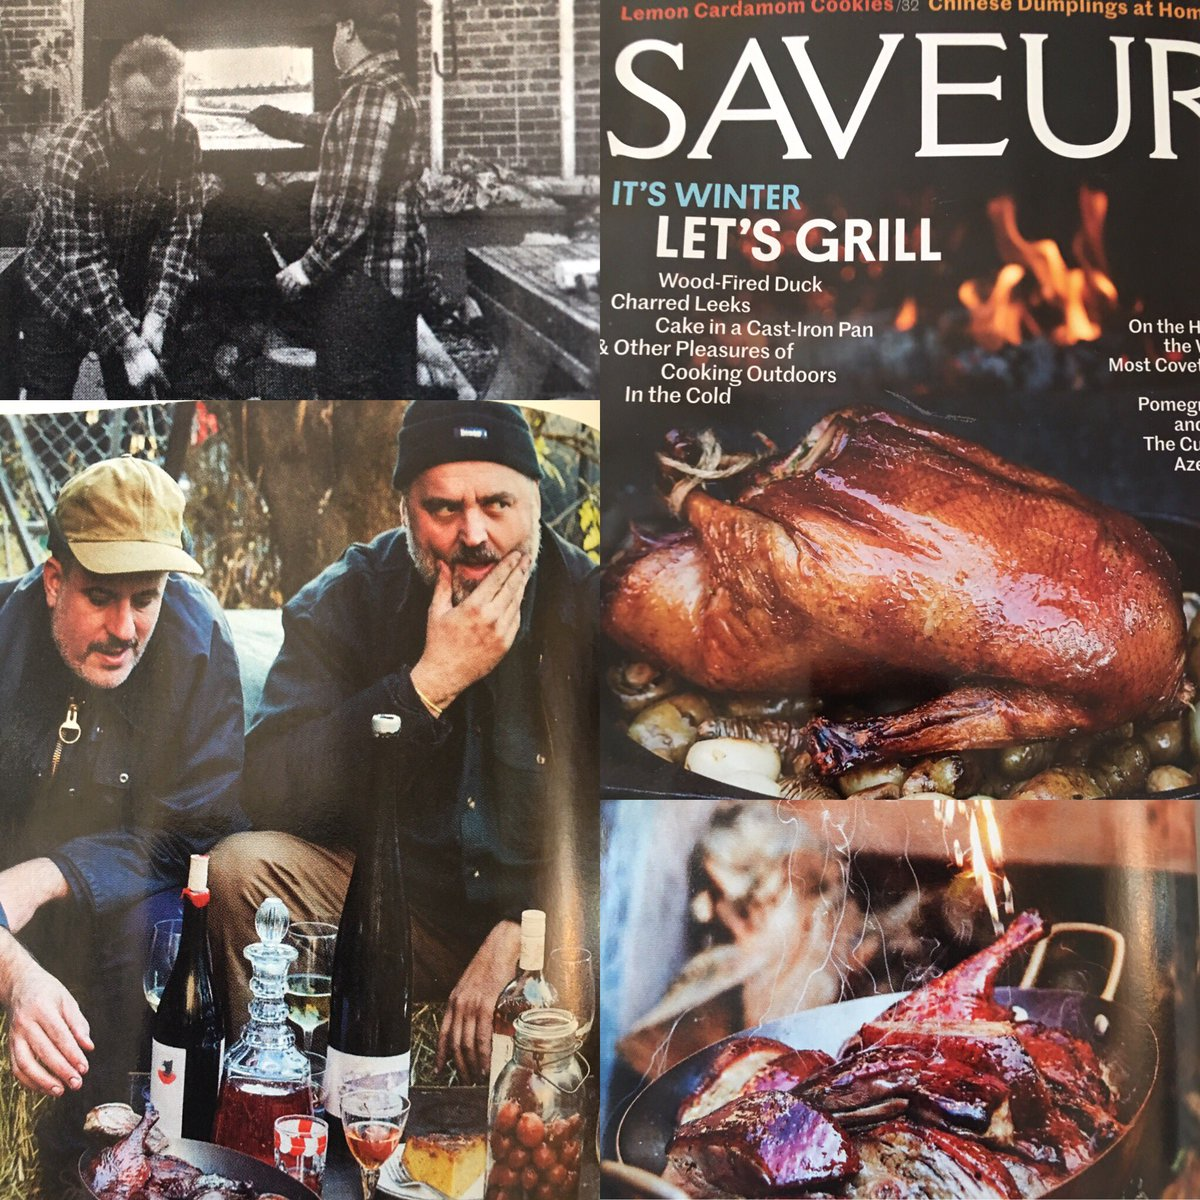 Well this is a BIG deal. Congrats to the @joebeef crew for making the cover of @SAVEURMAG! #onthemap https://t.co/HS95x0FLYV